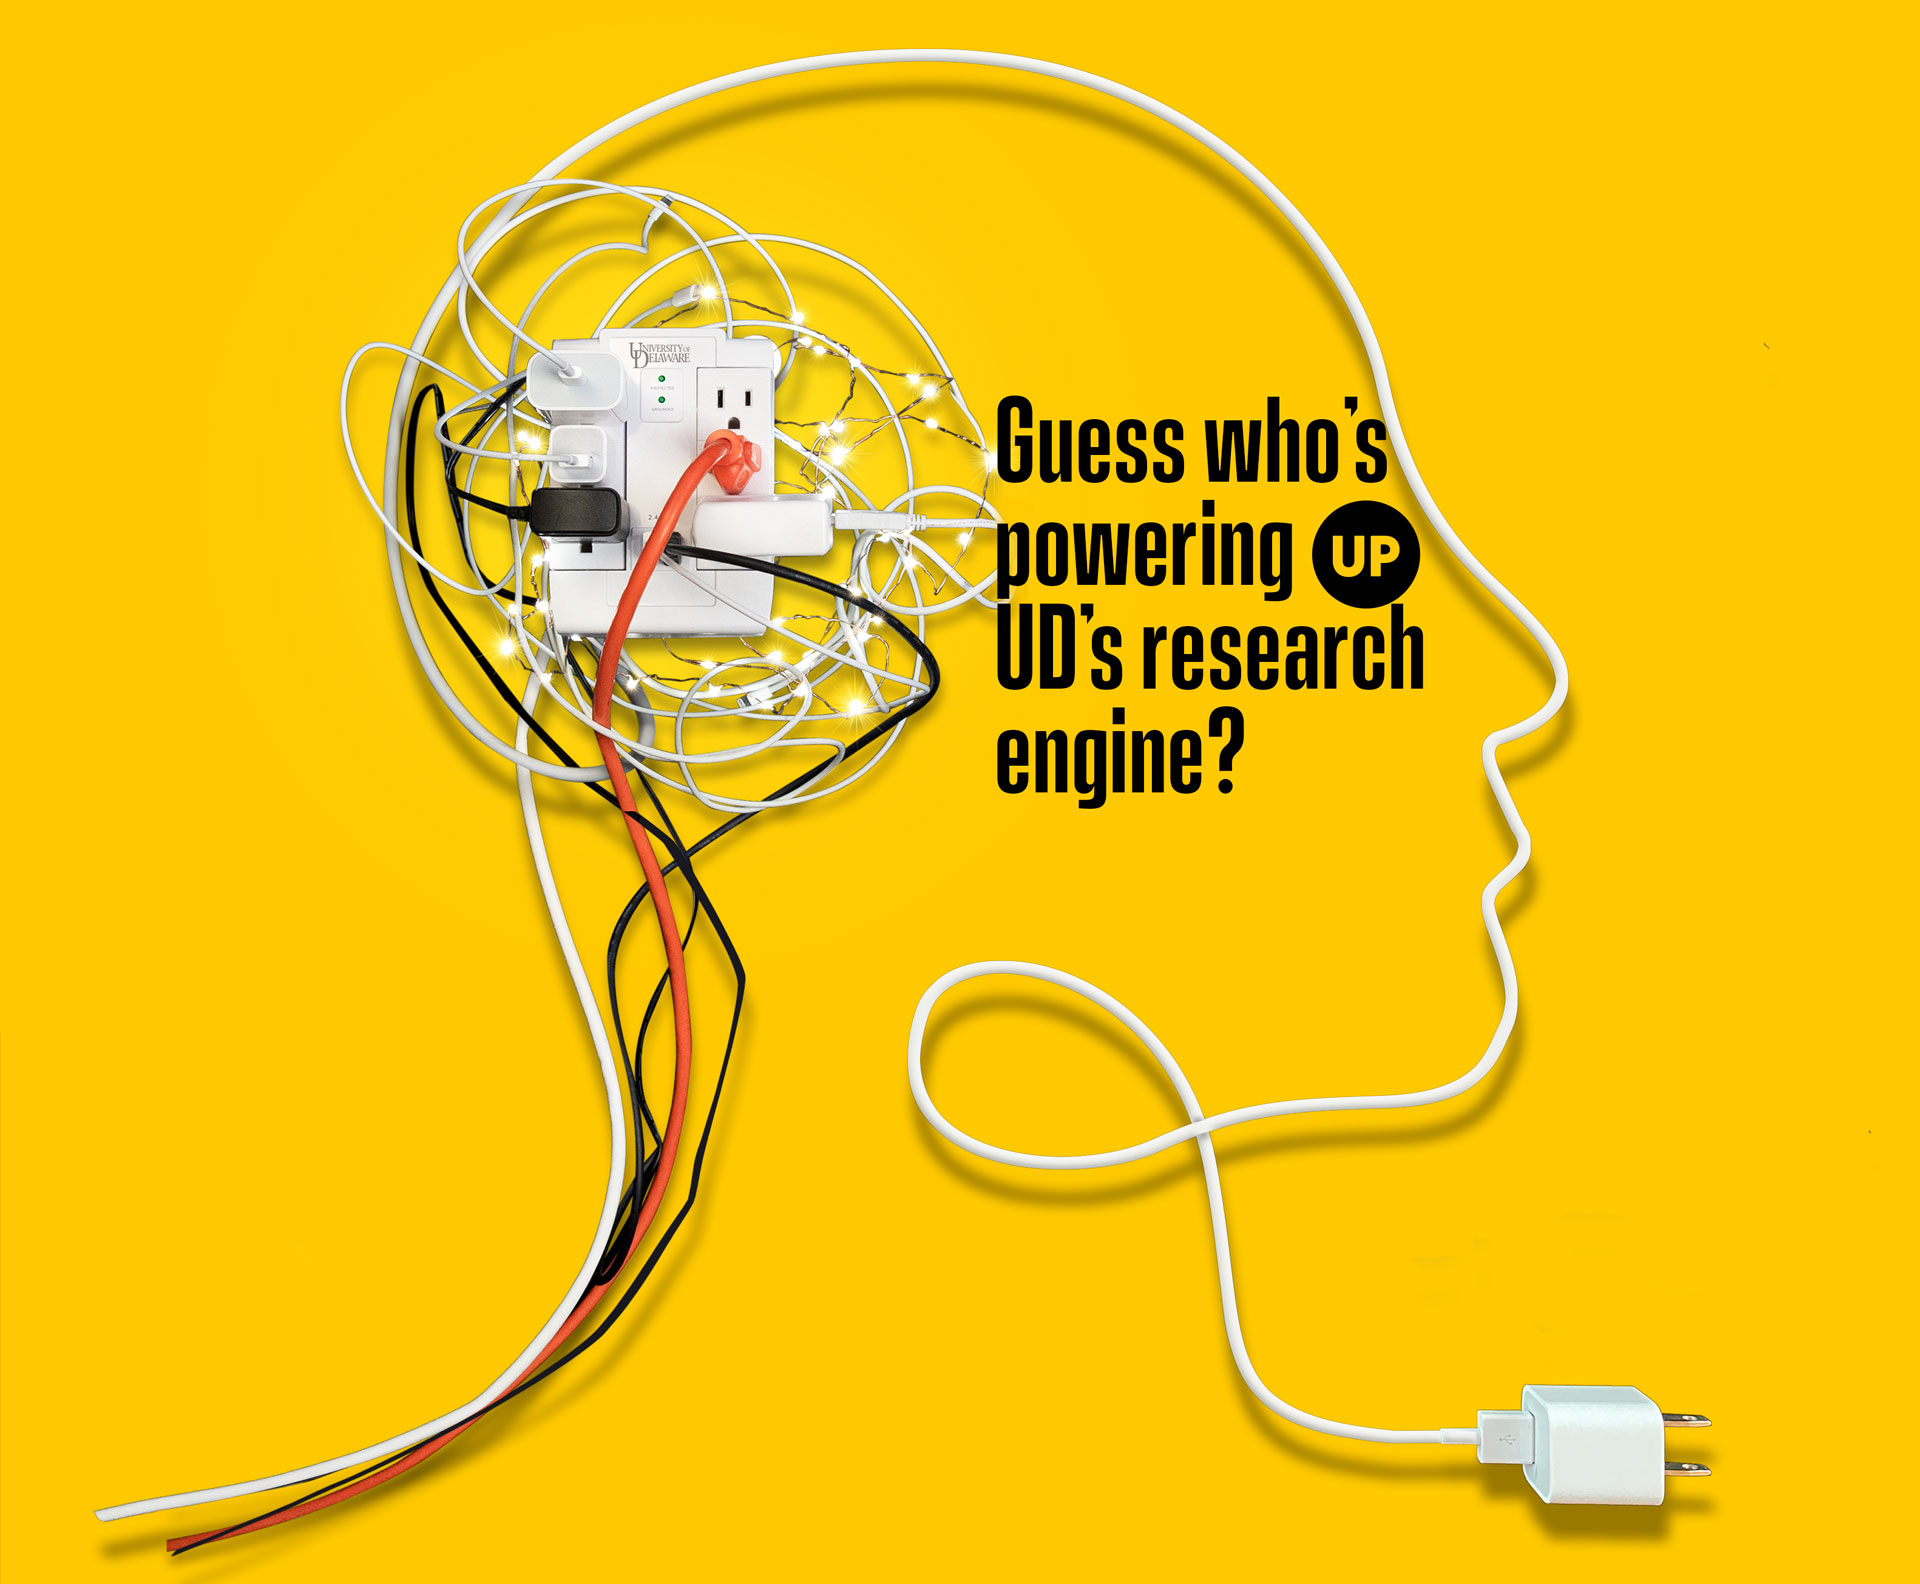 Guess who's powering up UD's research engine?